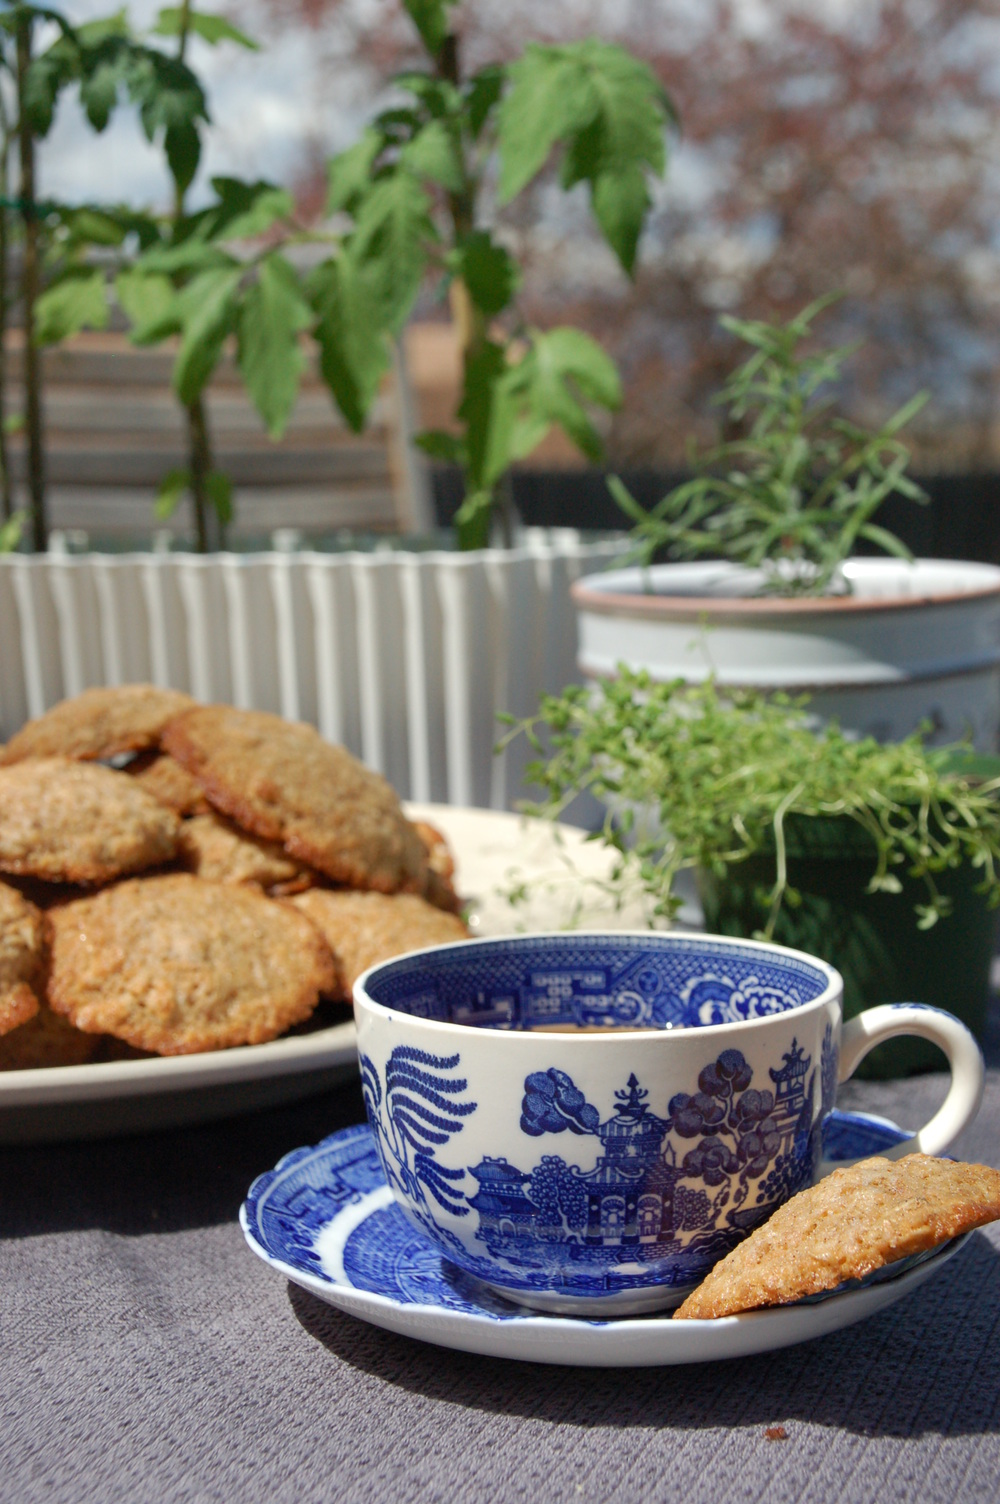 Enjoying these crunchy roasted coconut and oats cookies in the sun today.